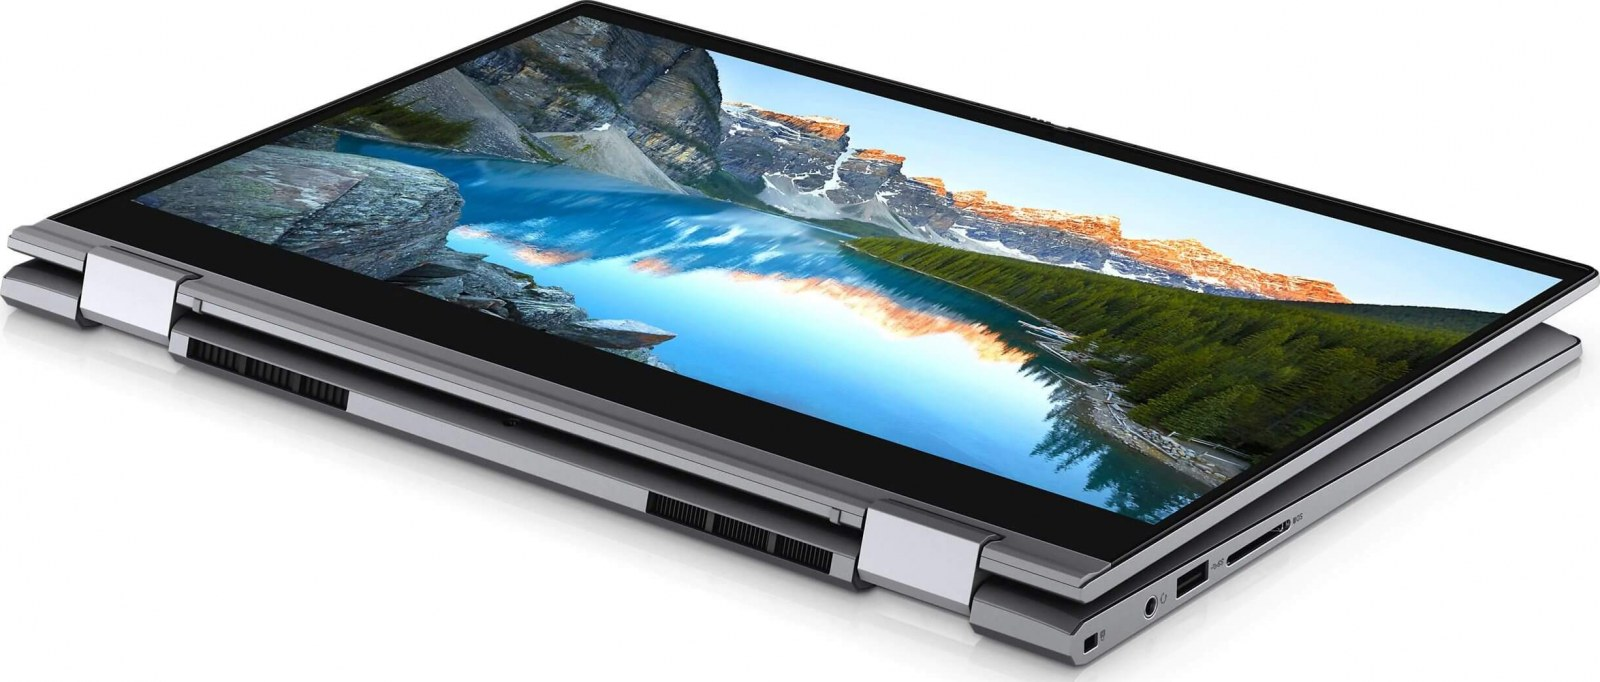 Inspiron (14 5406 2-in-1) photo 8